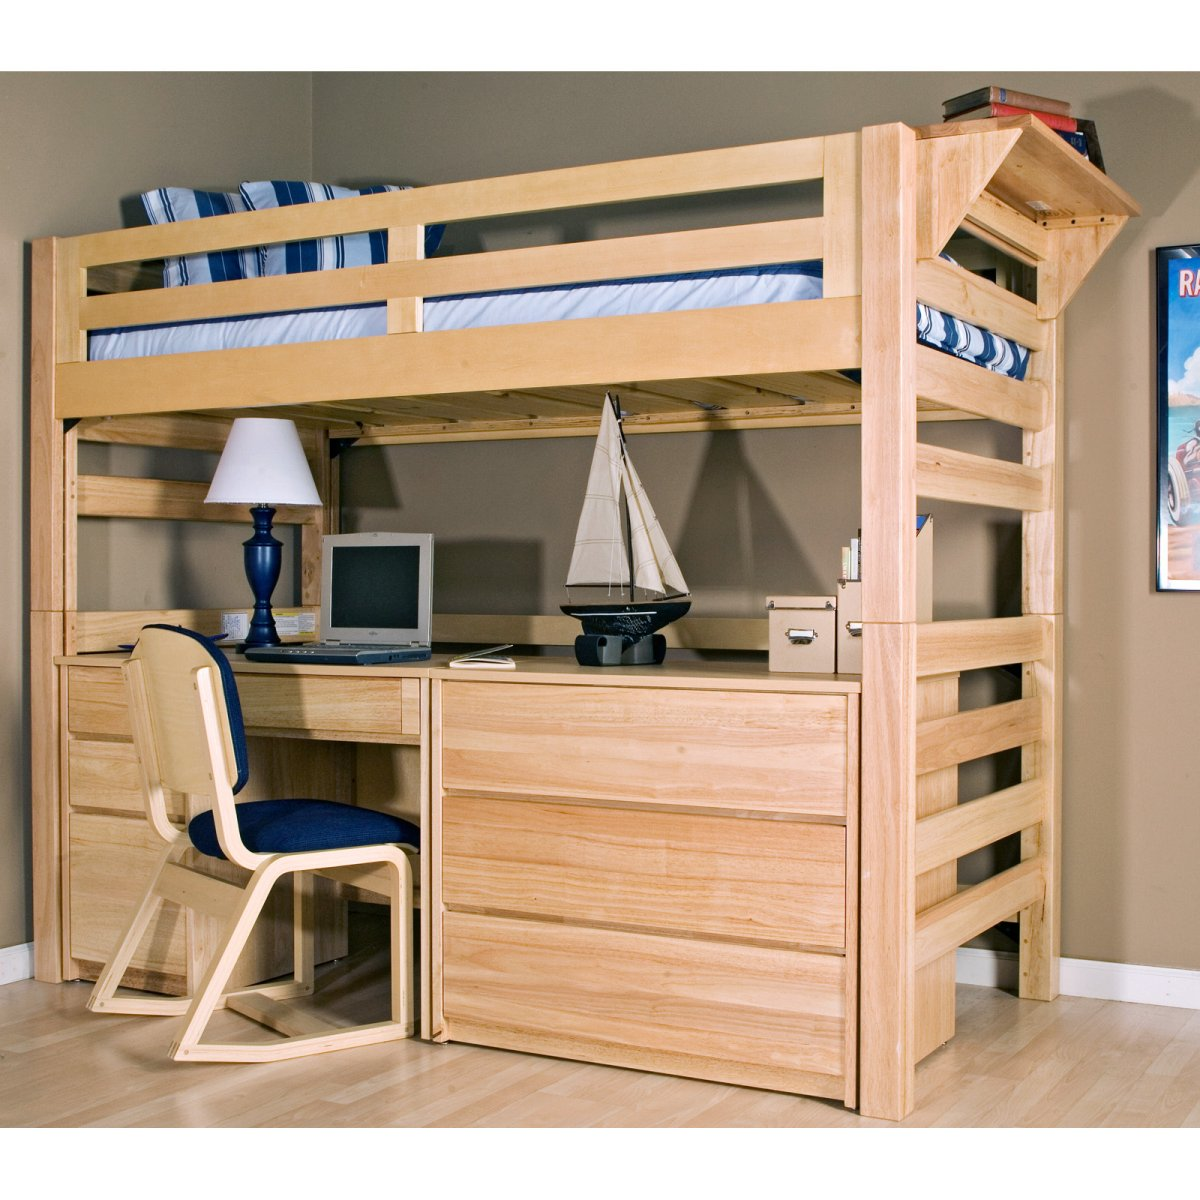 Bunk Bed With Desk. Stunning Full Loft Bed With Desk Designs Bunk